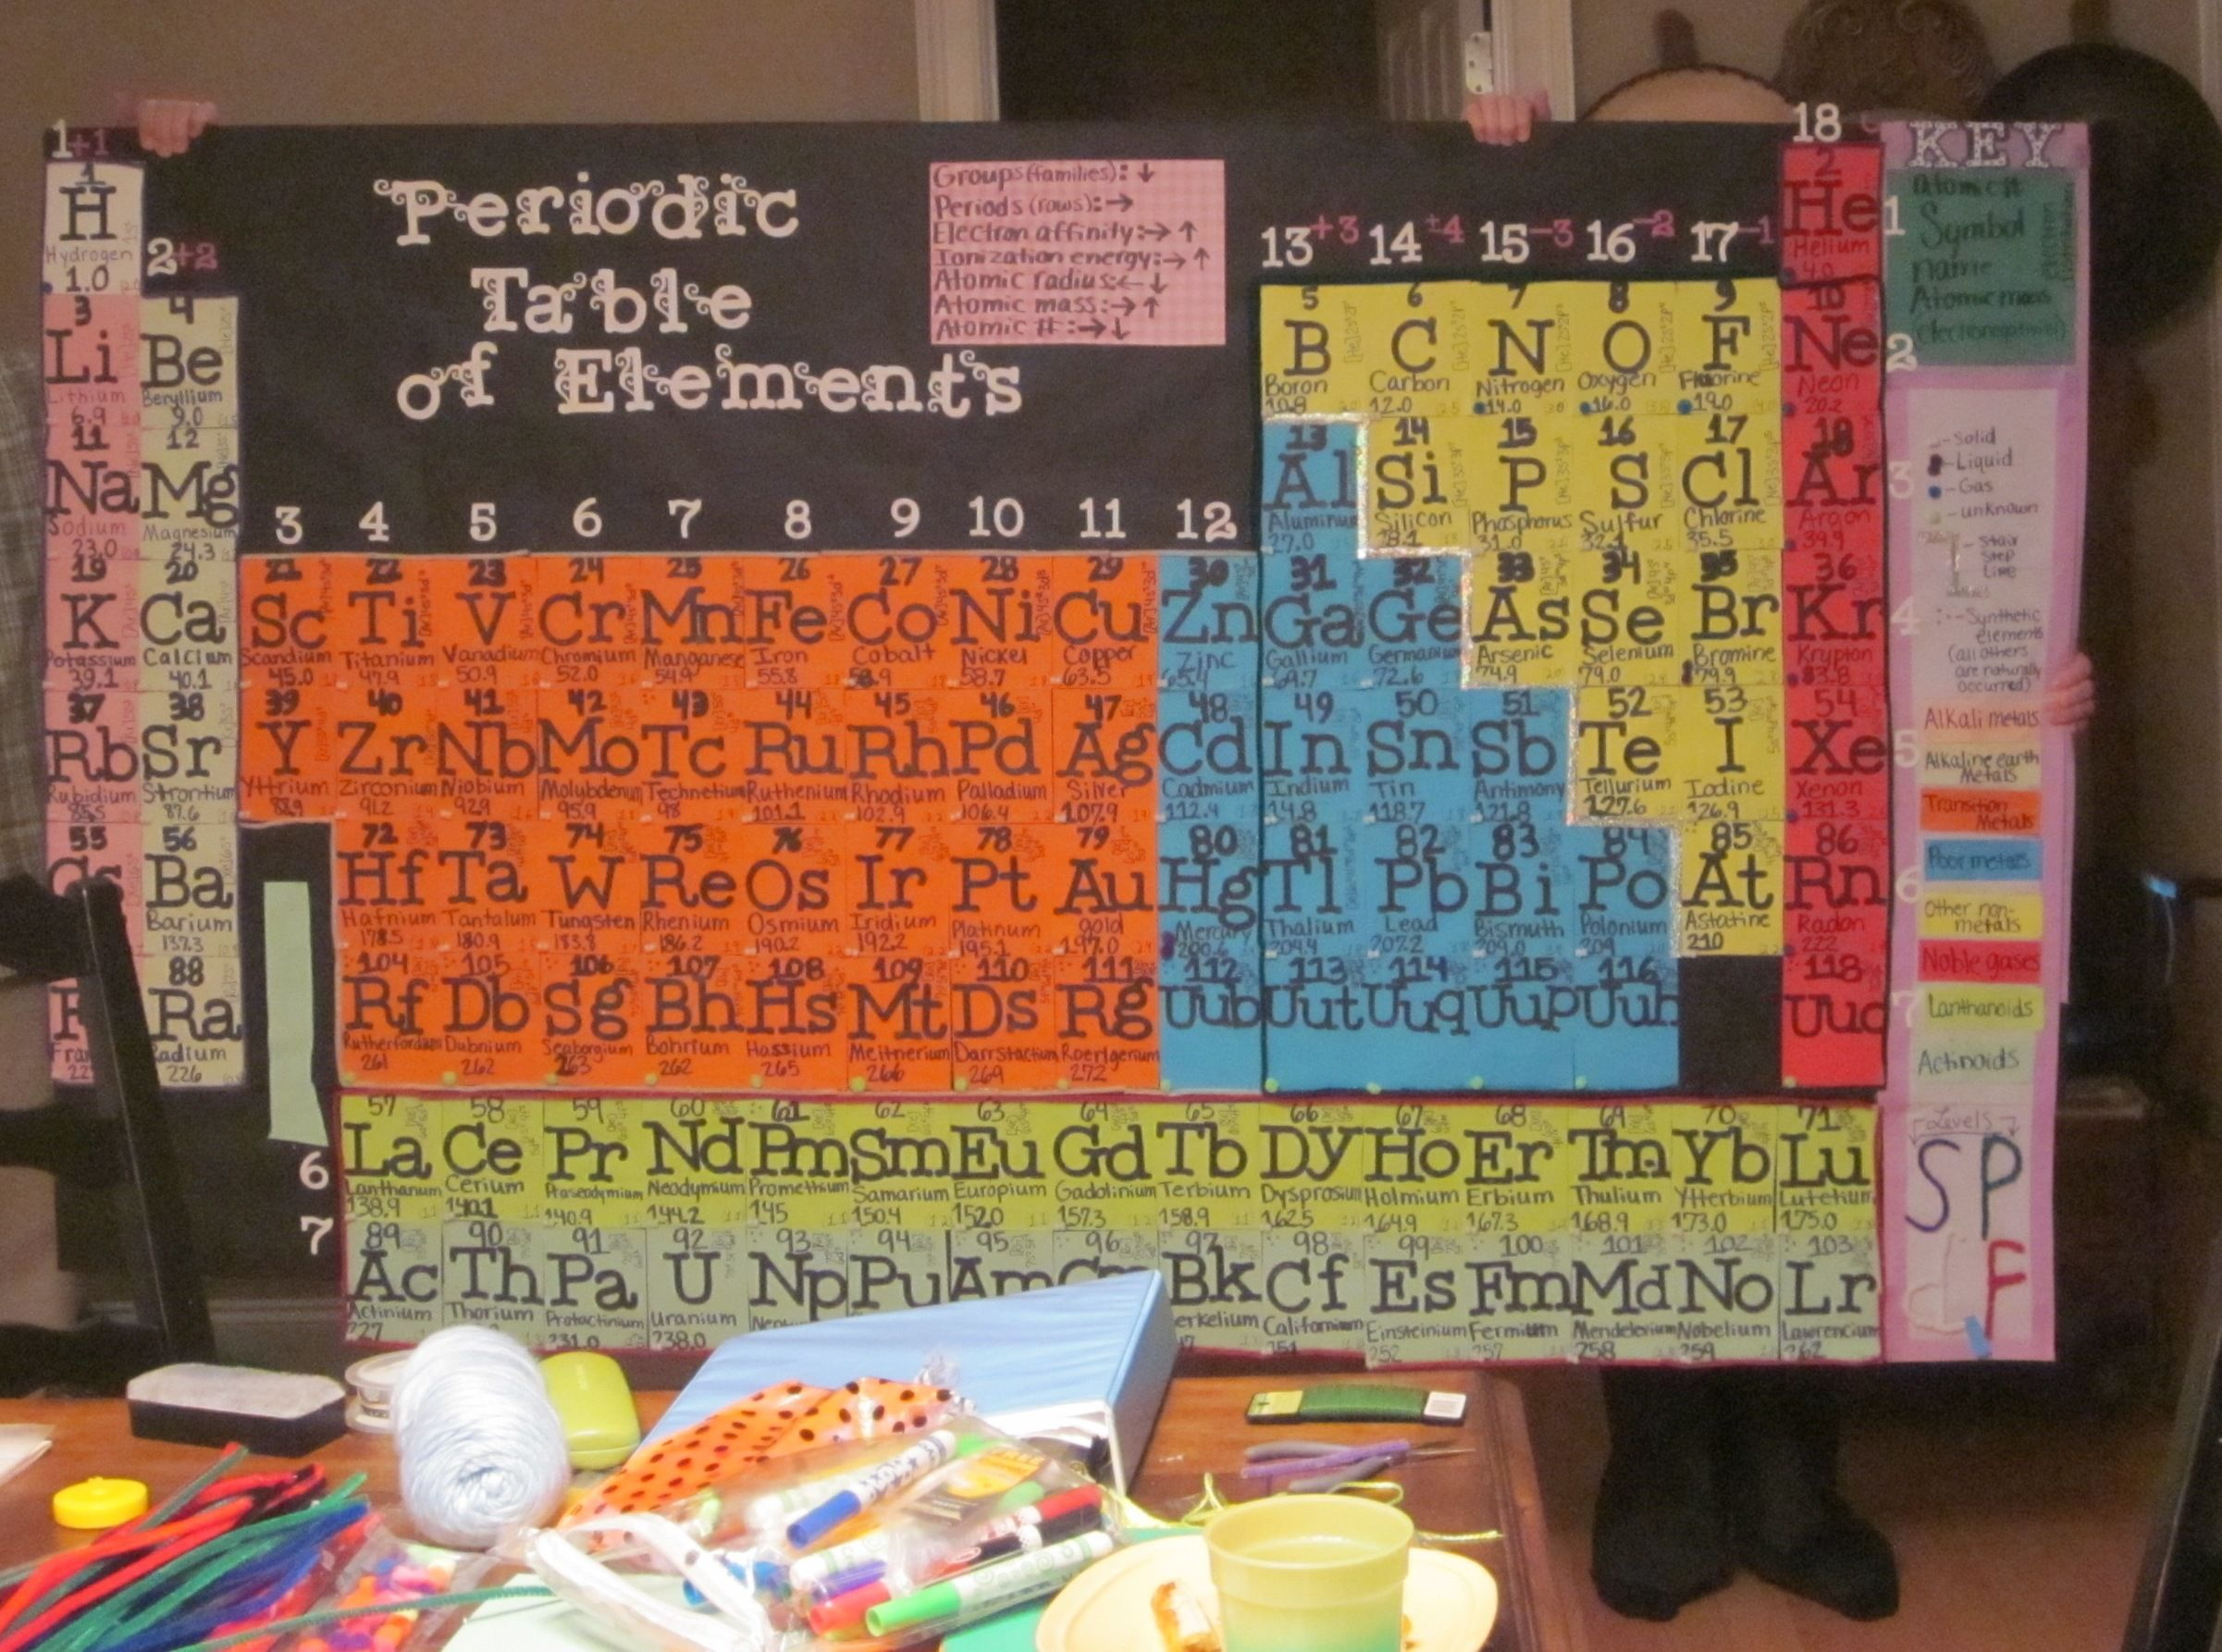 Periodic Table We Had To Make For Chemistry Its 4x7 And